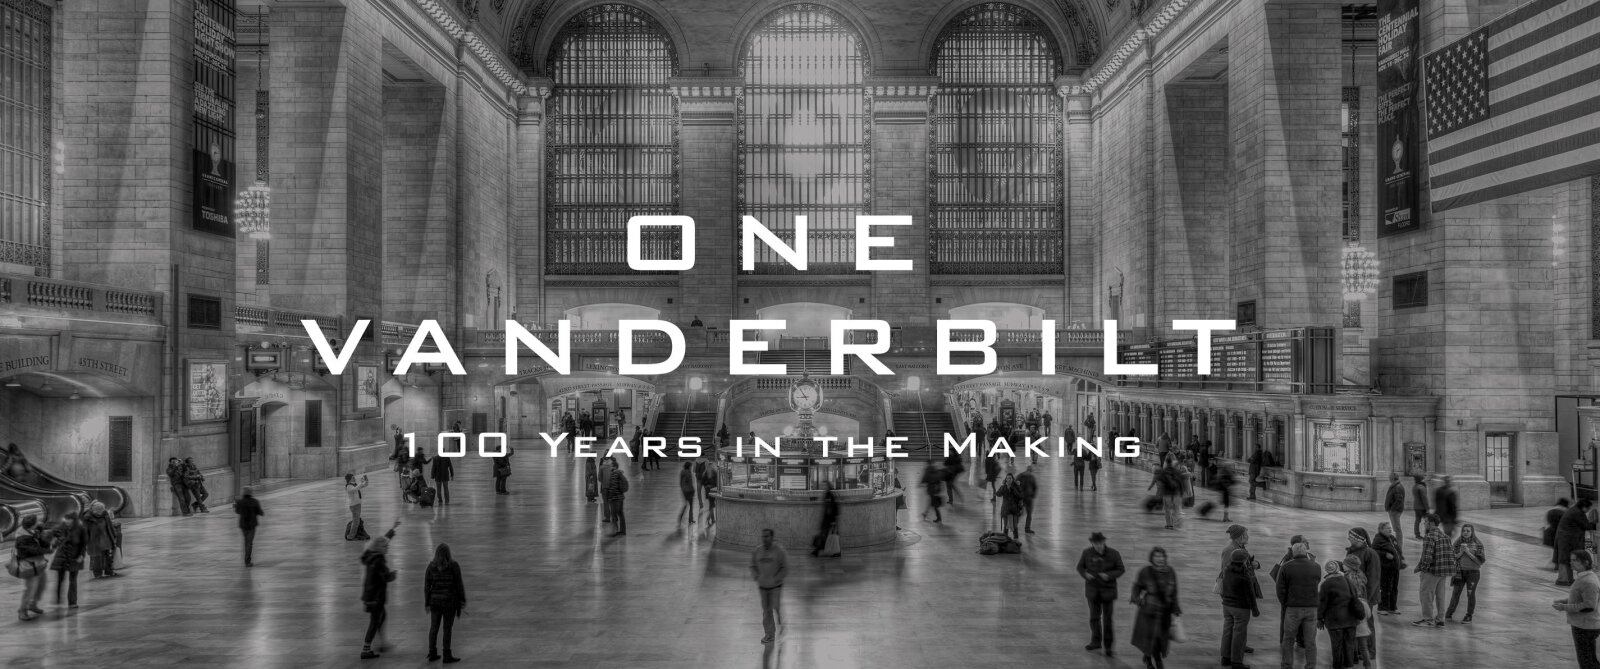 One Vanderbilt: 100 Years in the Making